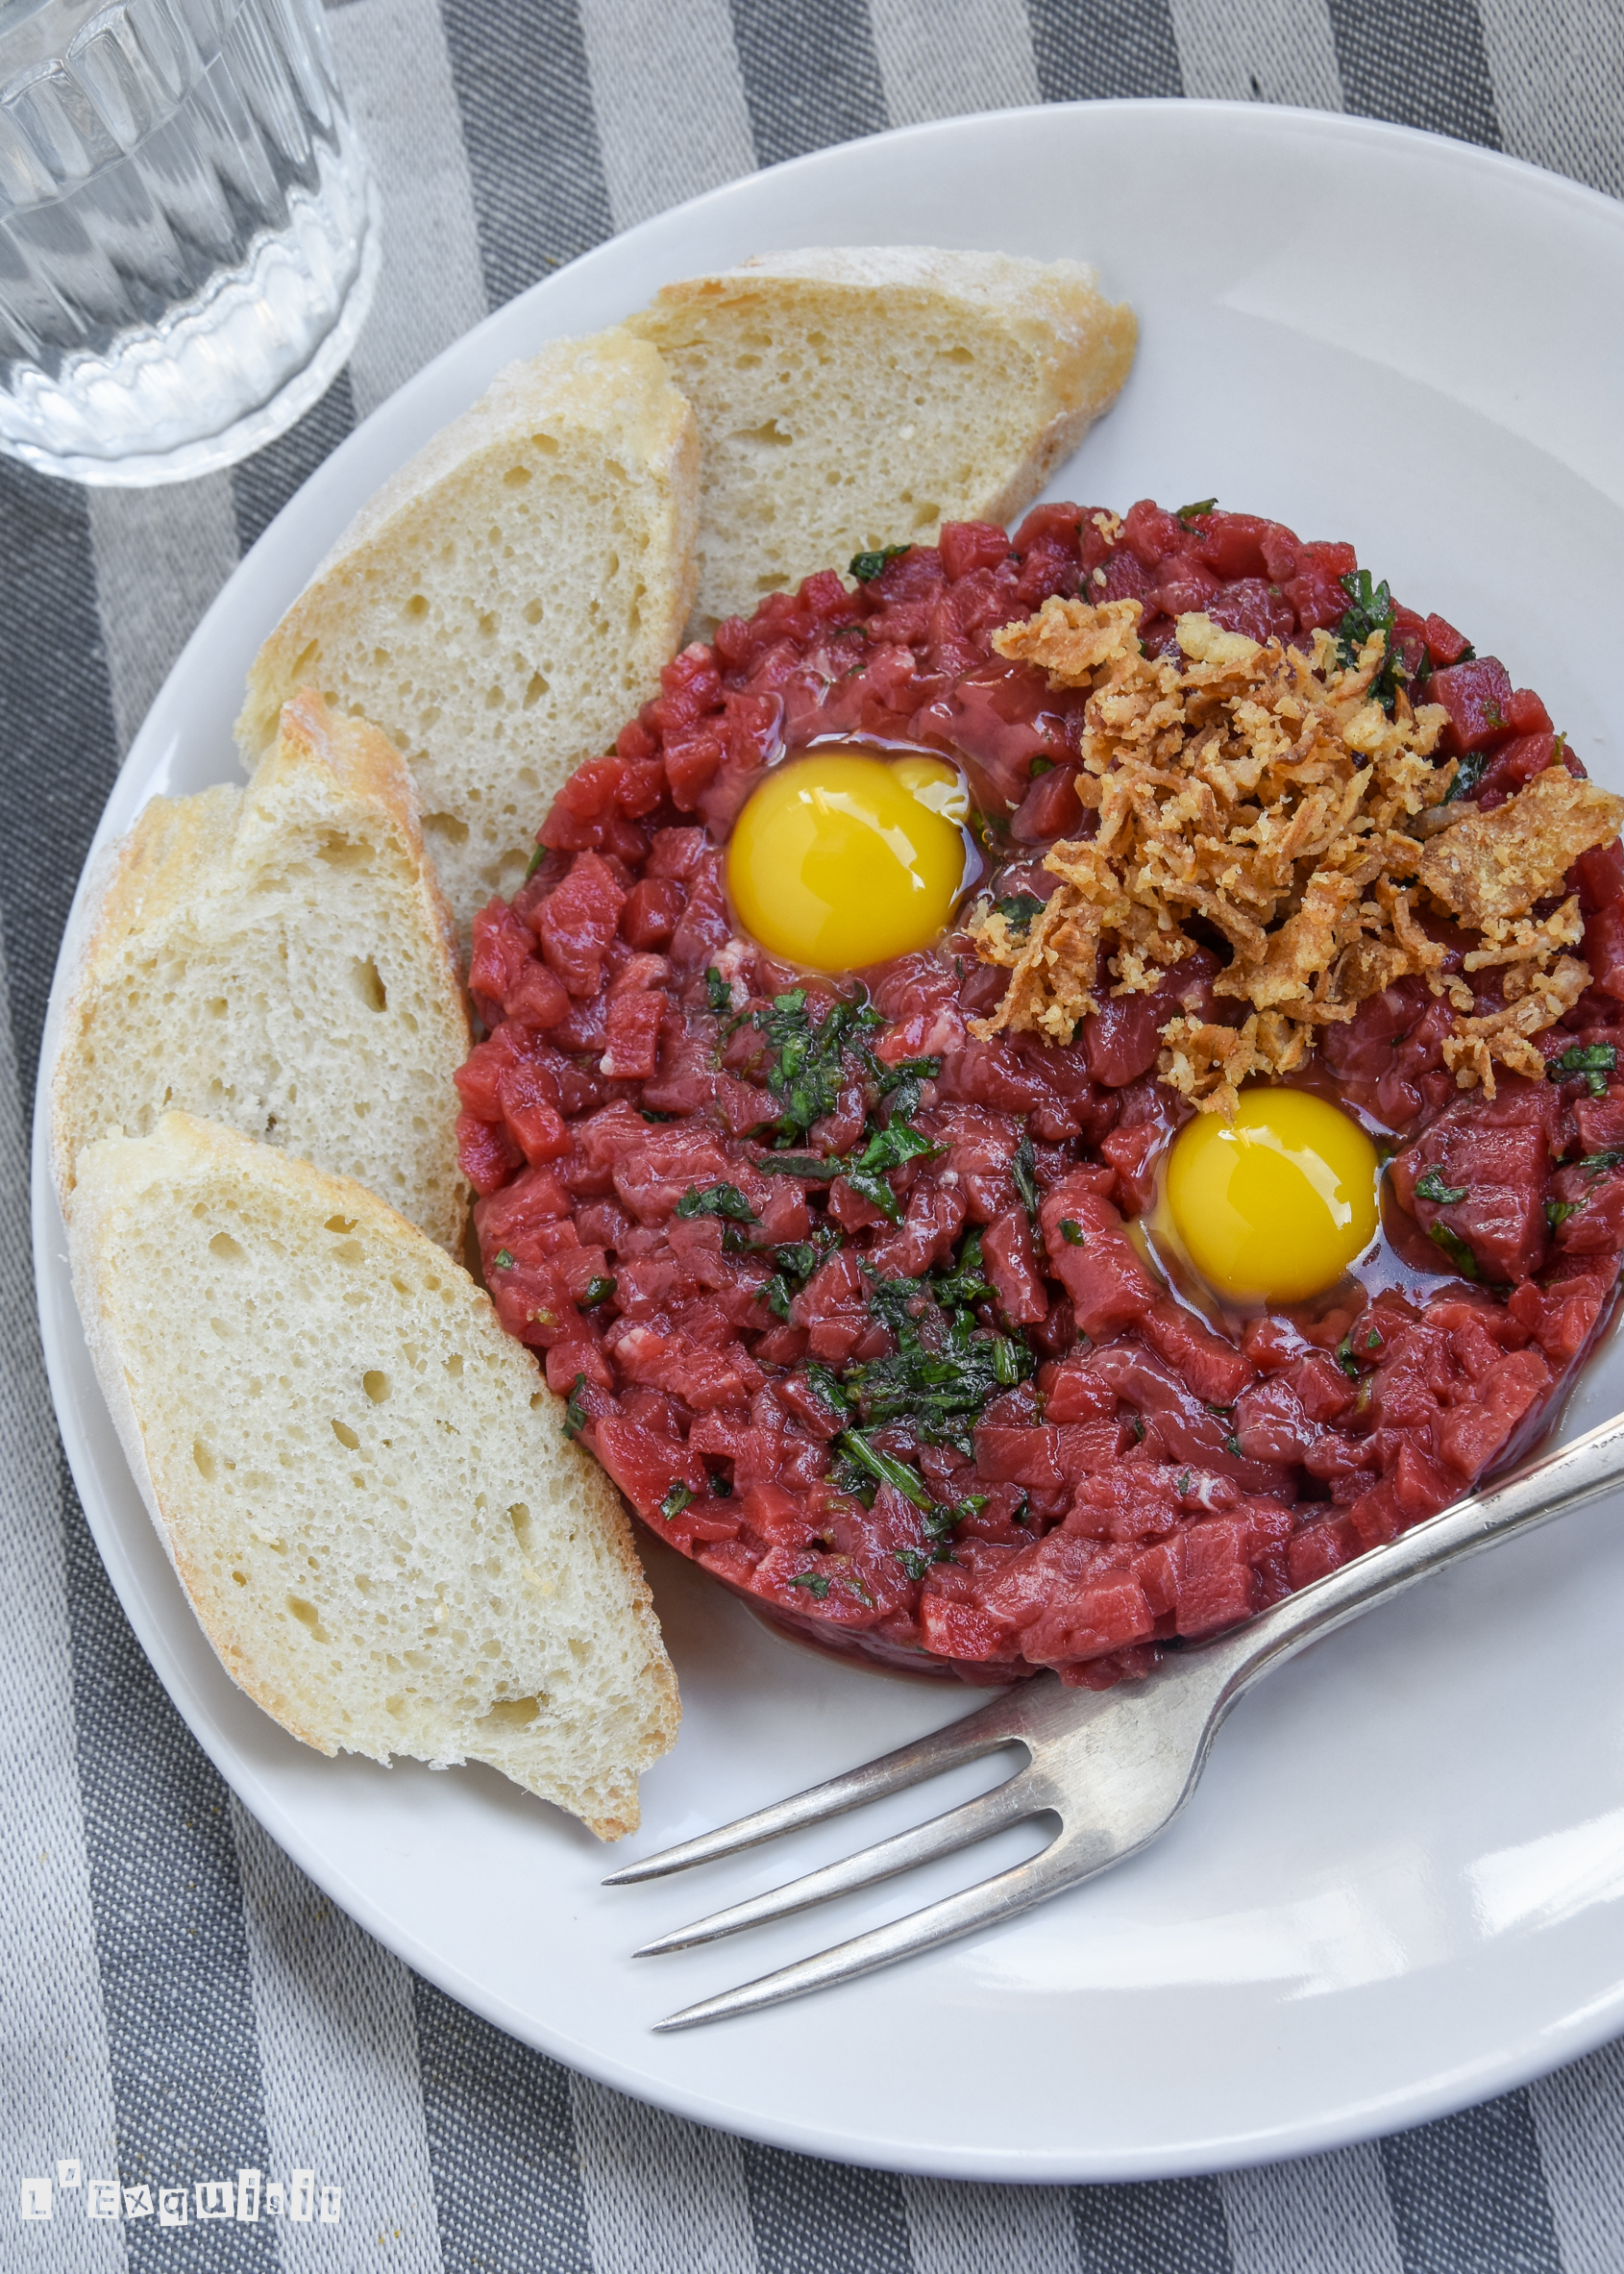 steak-tartar-al-estilo-asiatico